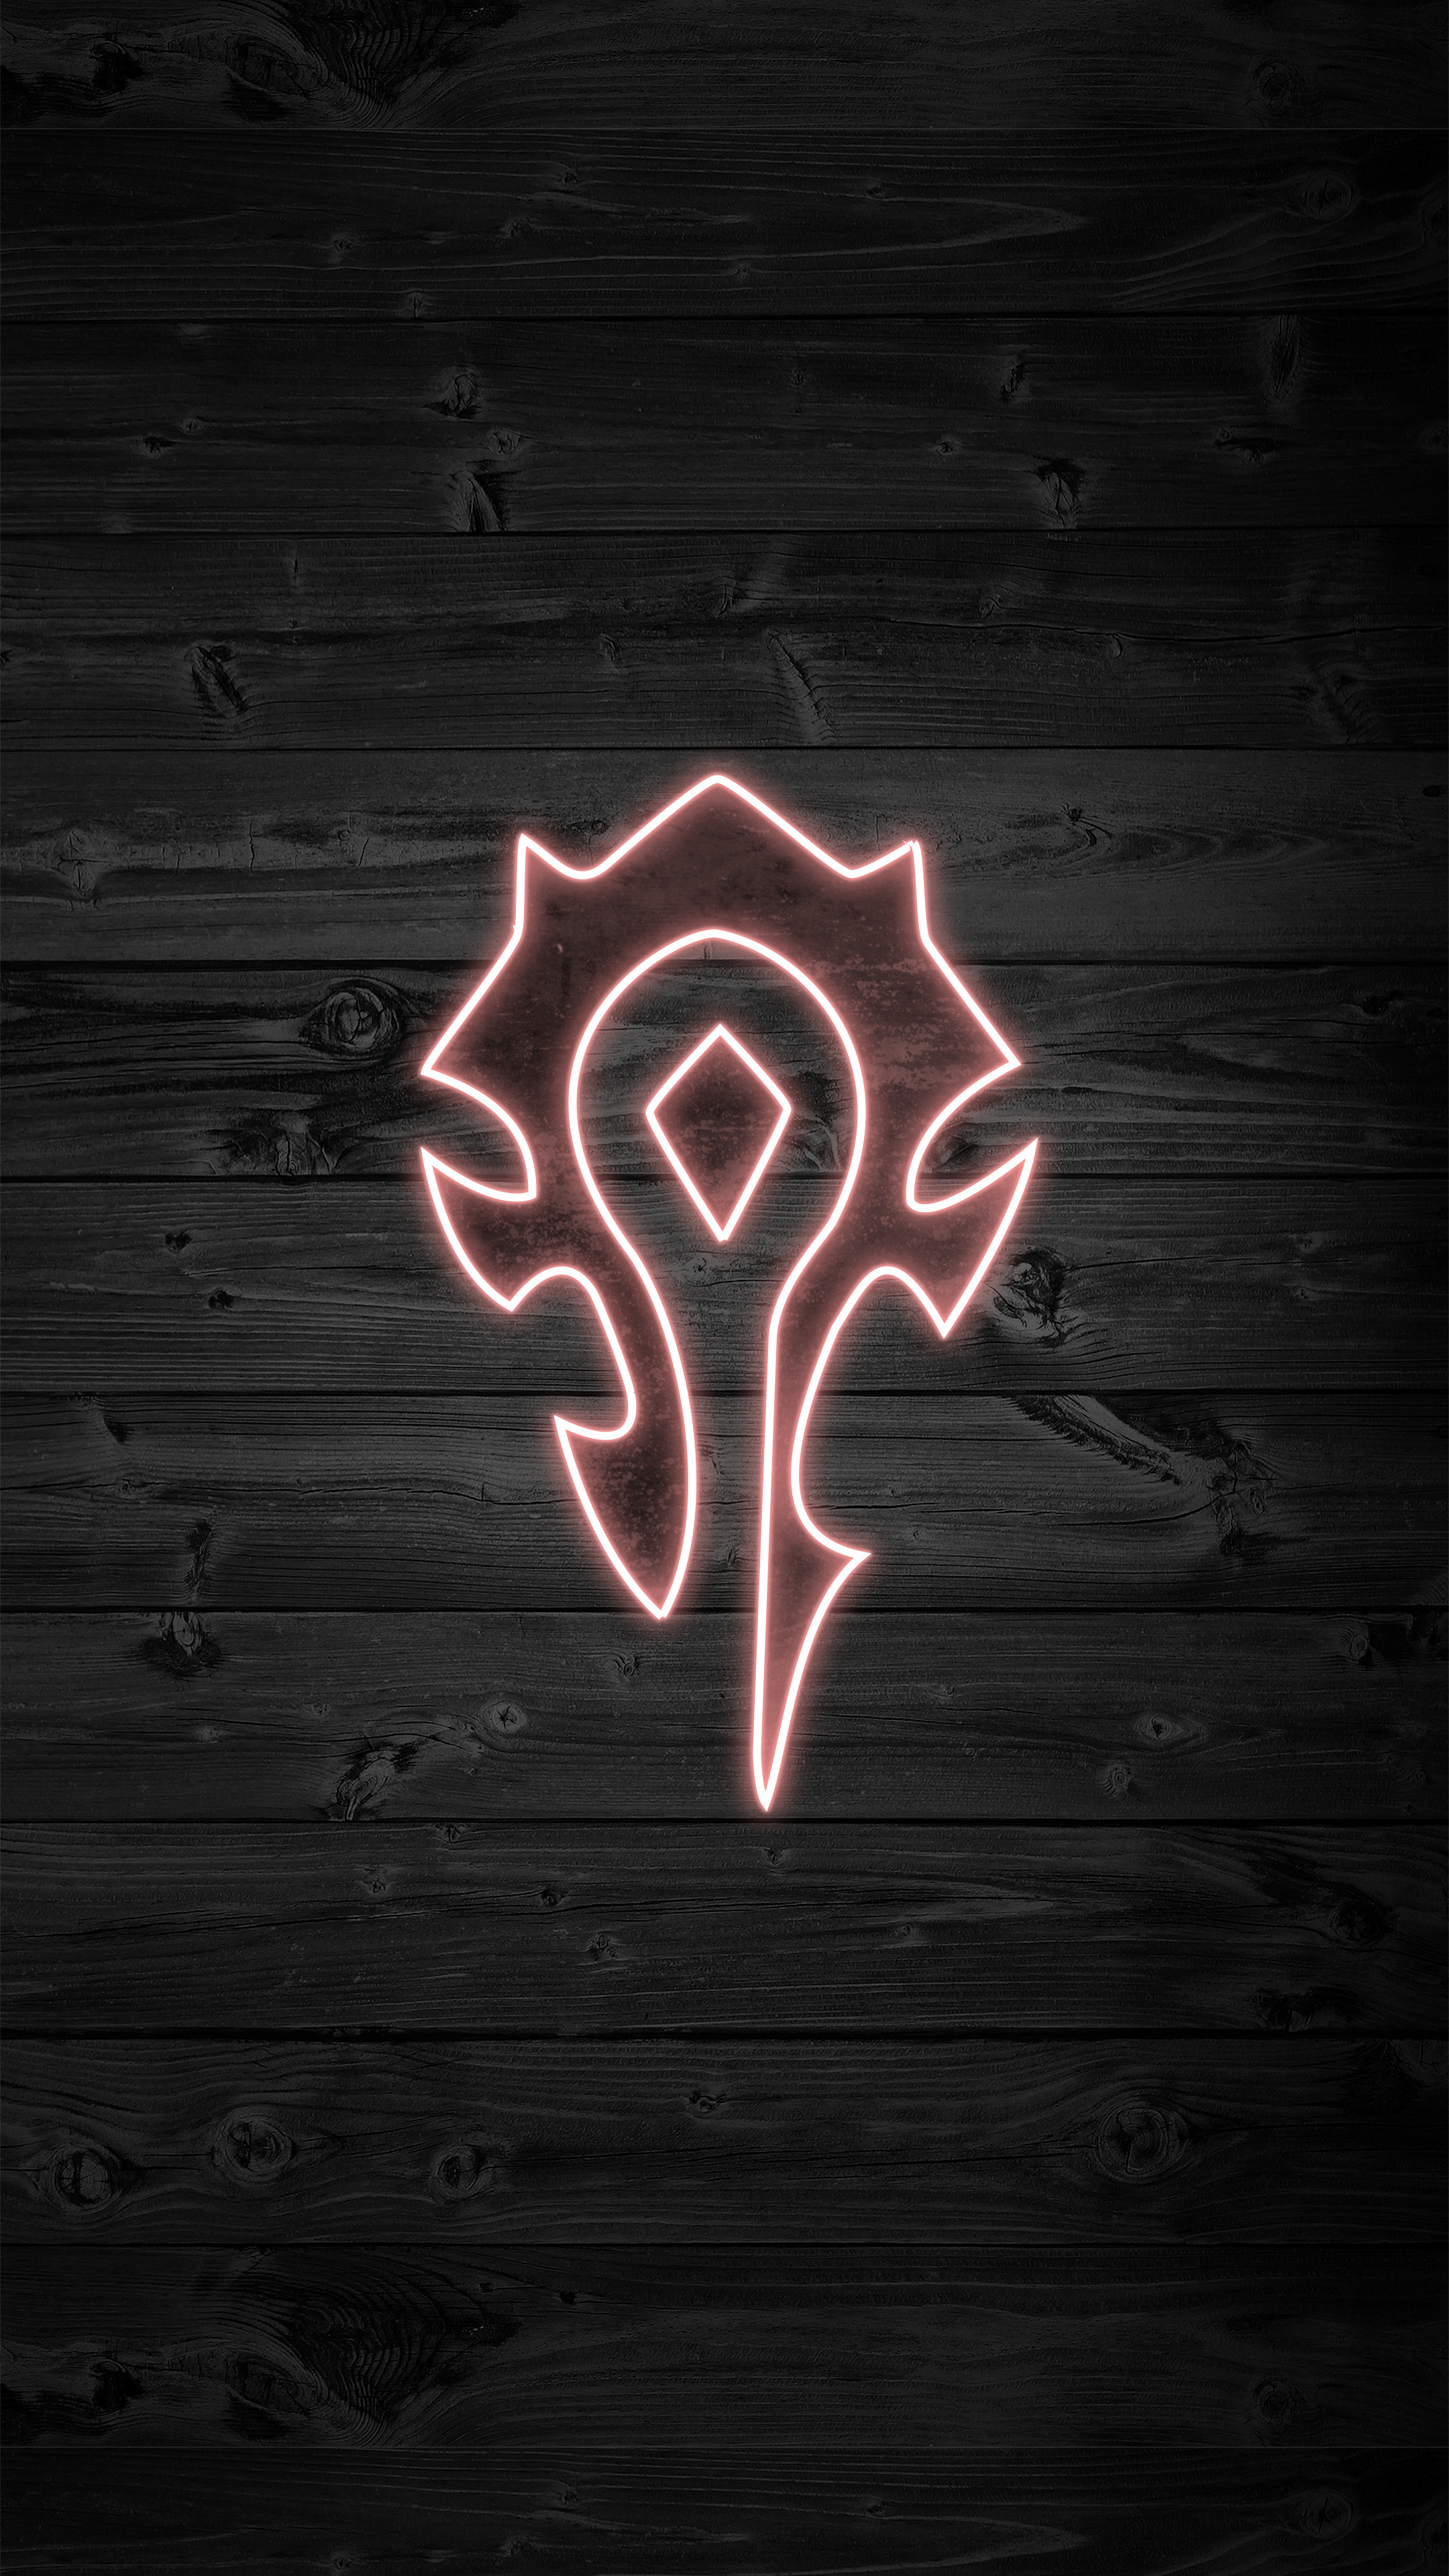 Horde symbol wallpaper download voltagebd Gallery